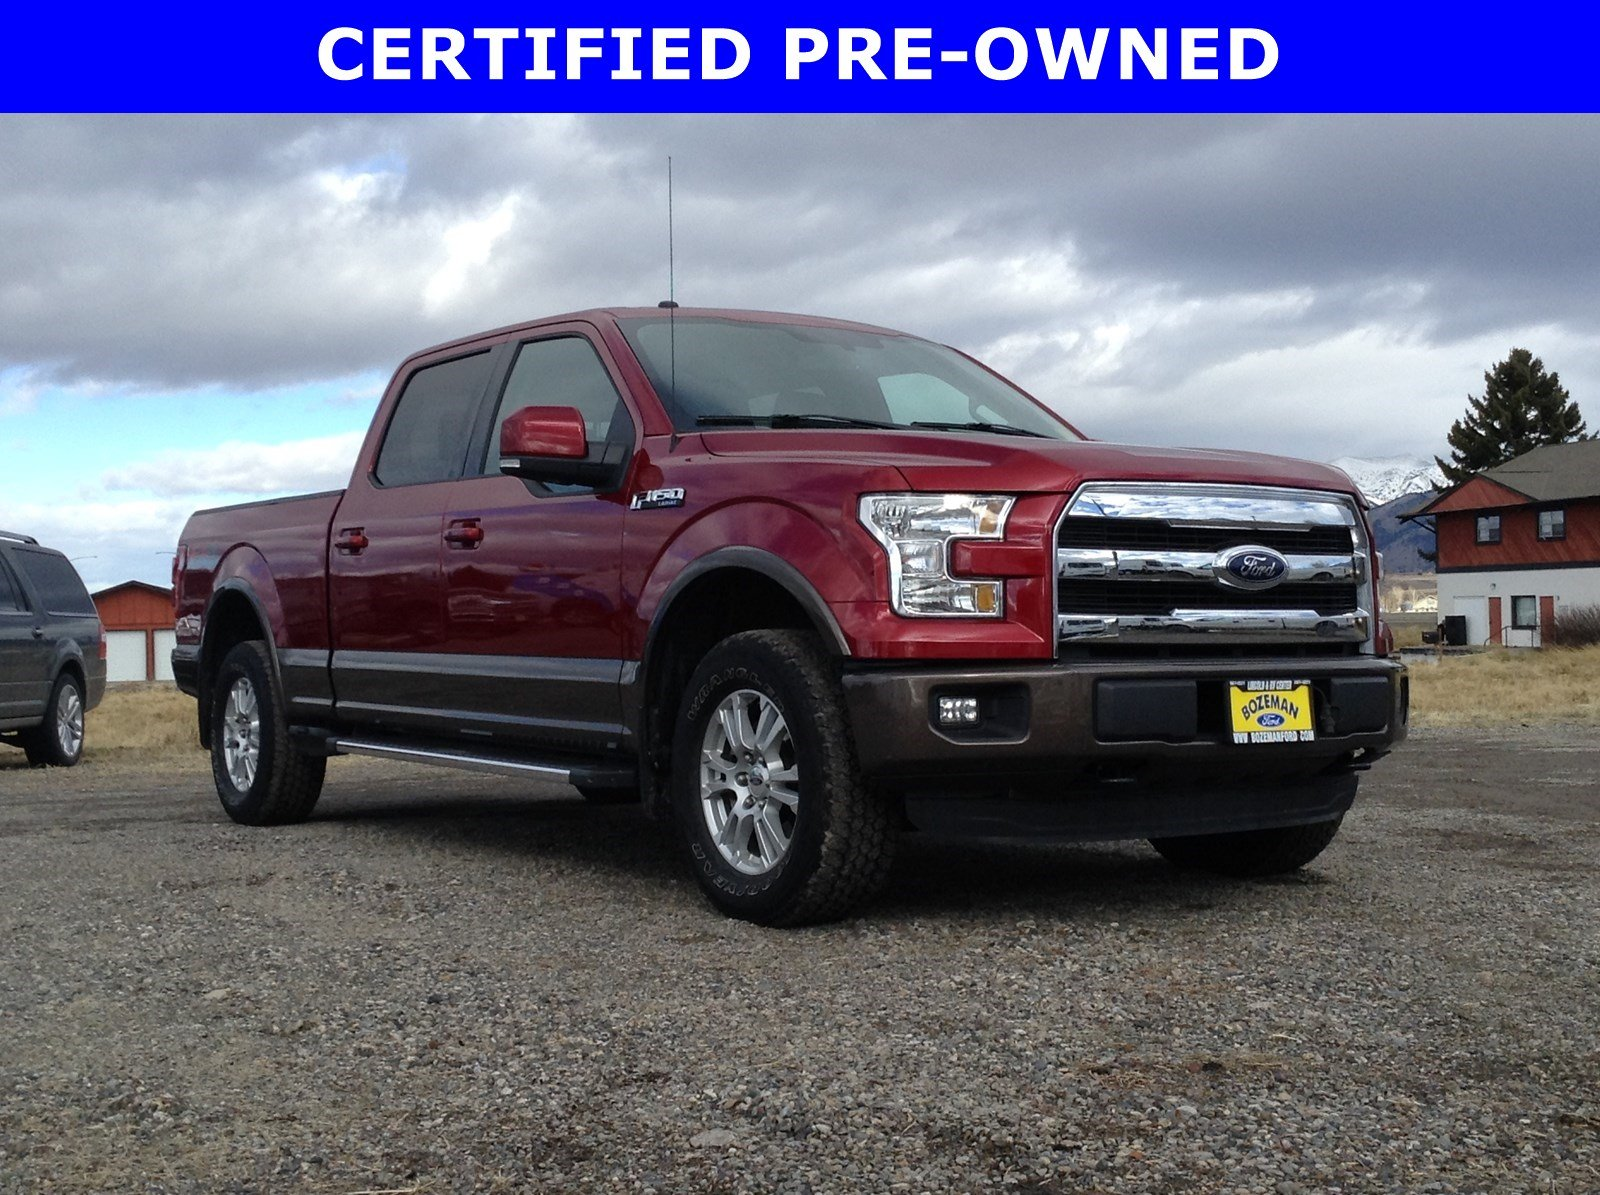 2016 Certified Pre-Owned Ford F-150 Lariat 4x4 Truck 4WD SuperCrew 157 Lariat